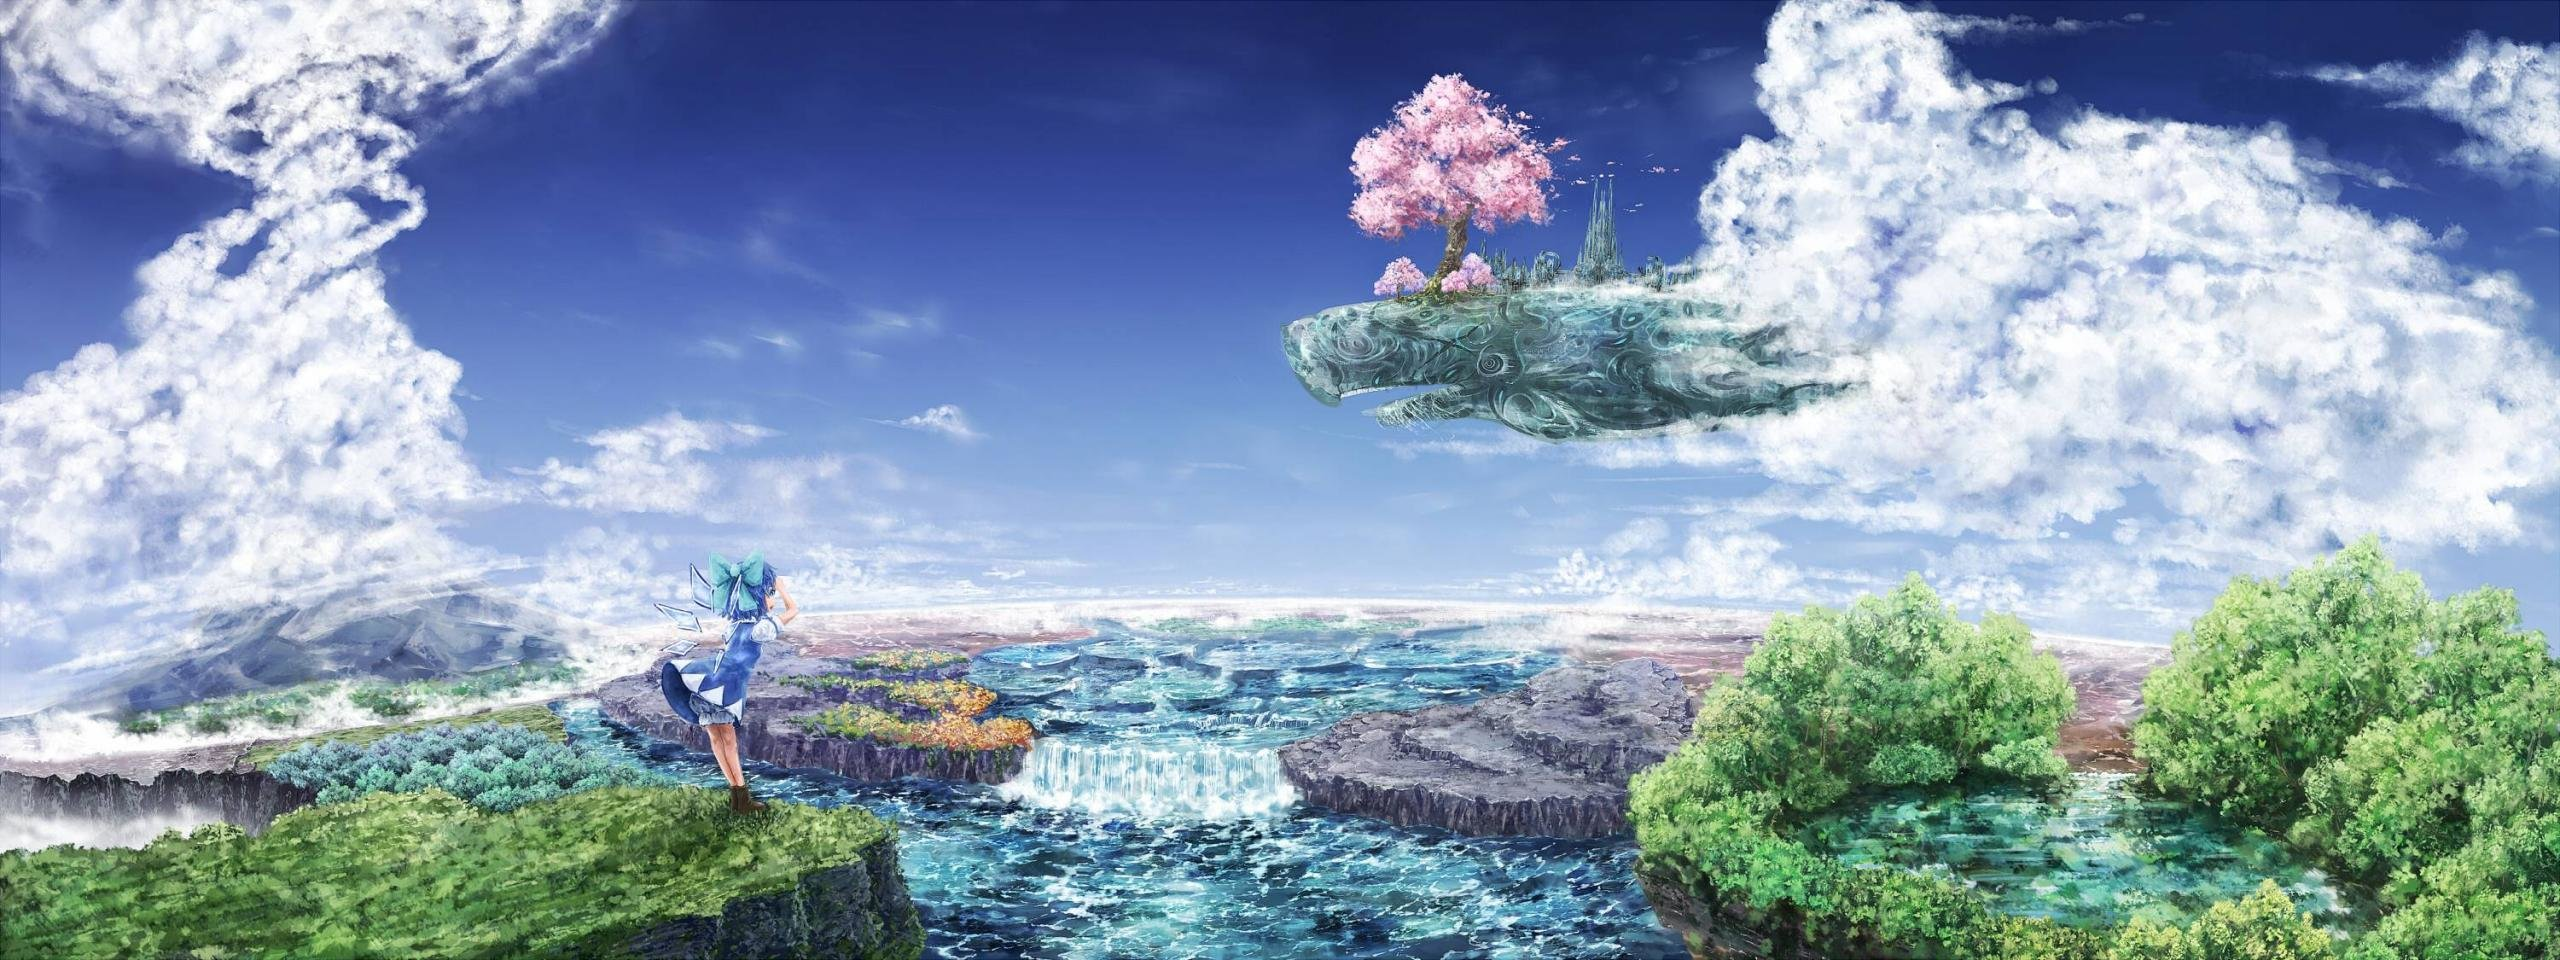 Download dual monitor 2560x960 Cirno (Touhou) PC wallpaper ID:220273 for free